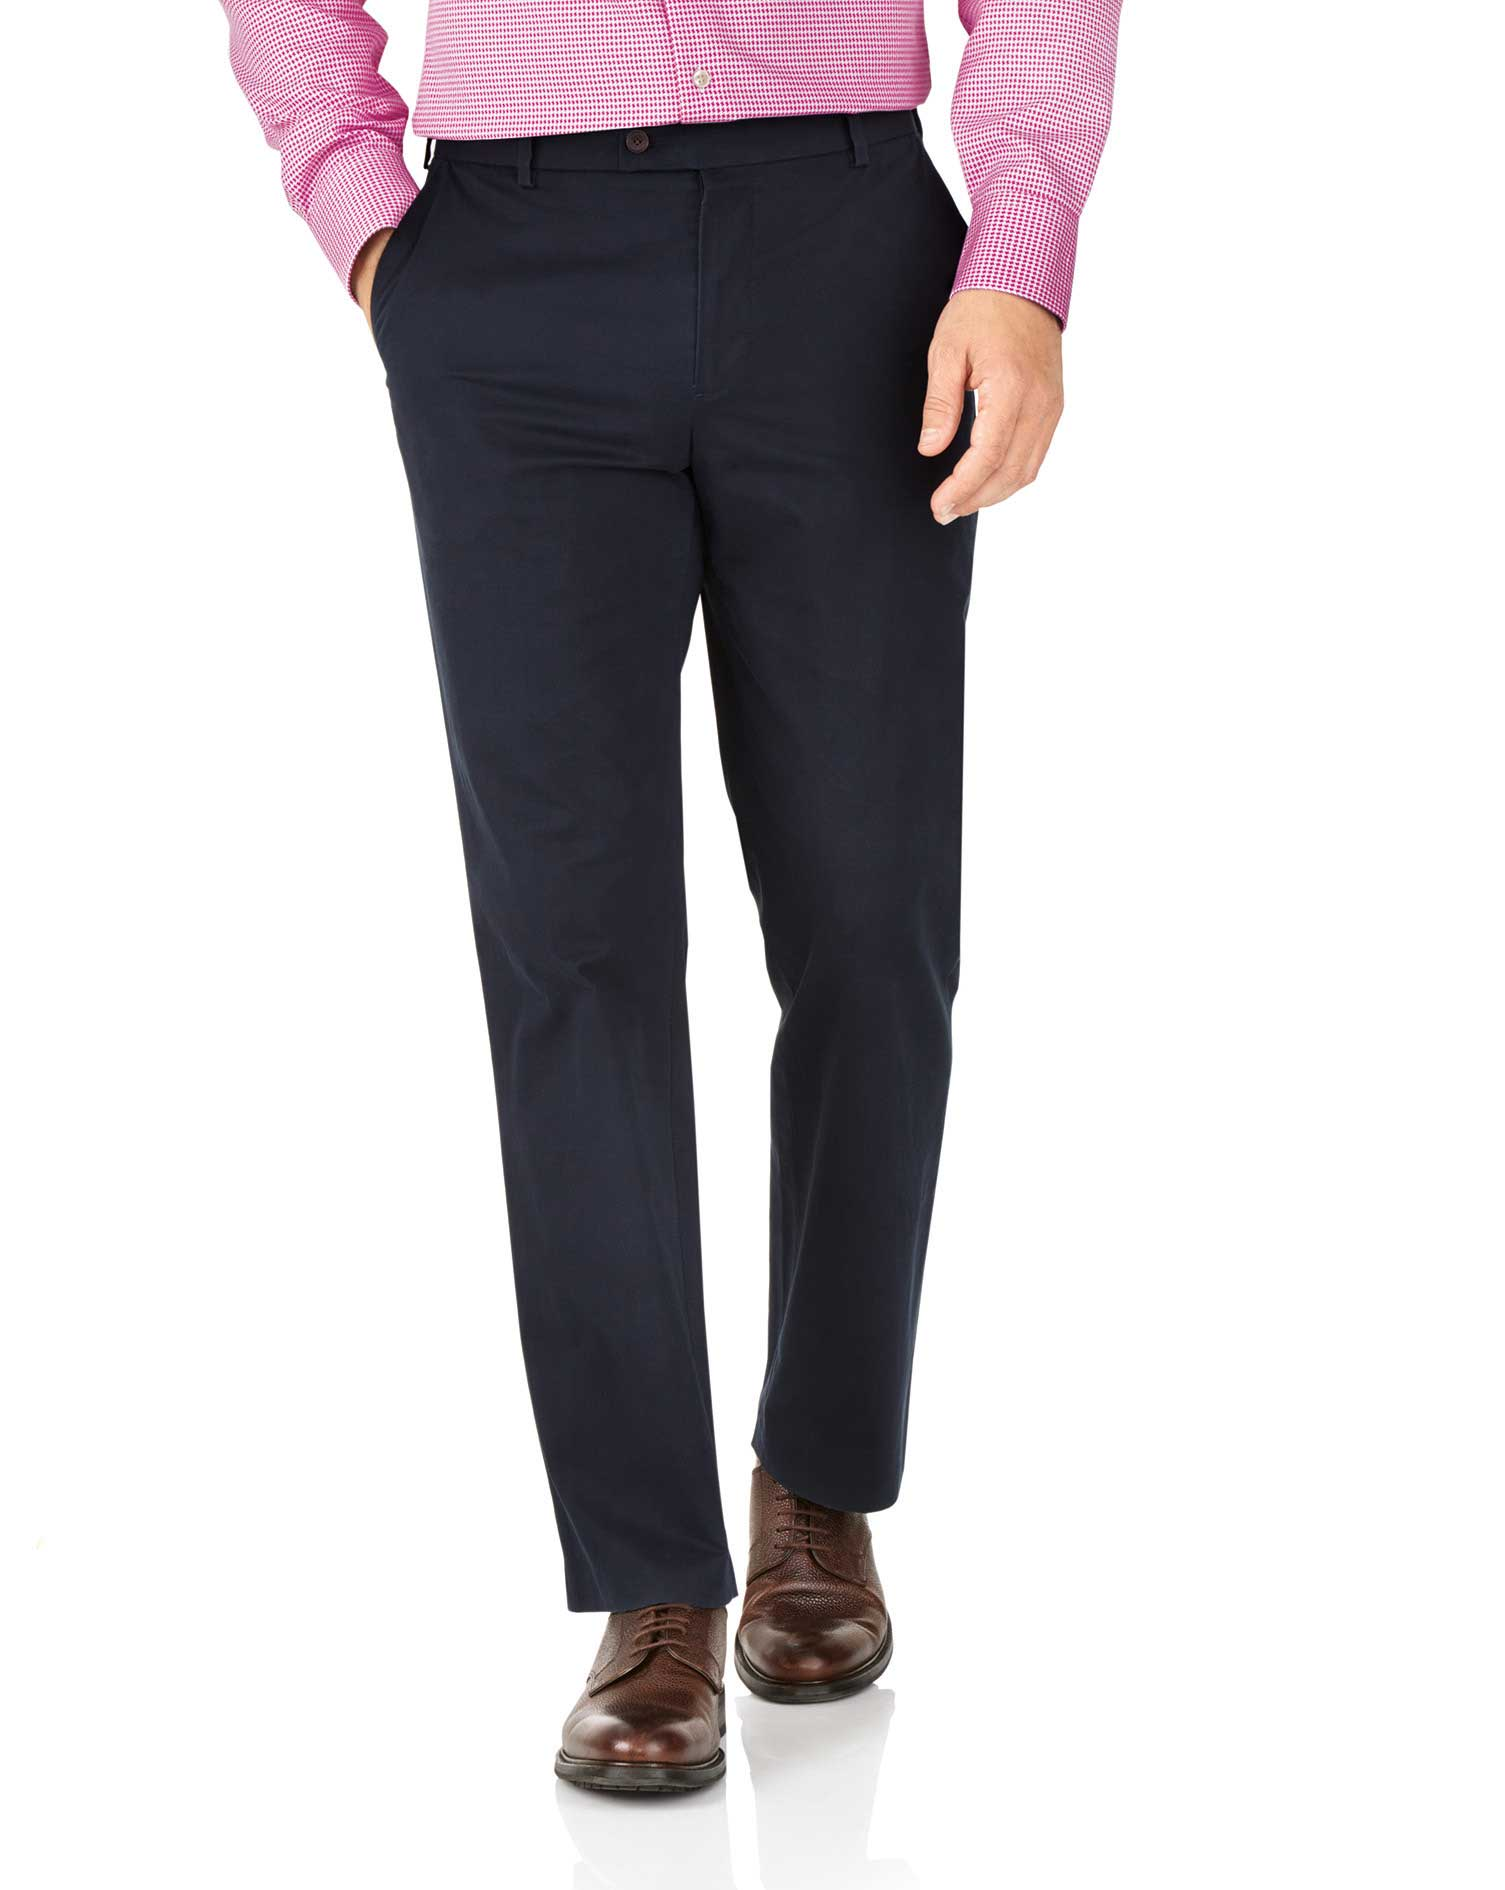 Navy Classic Fit Stretch Cotton Chino Trousers Size W38 L32 by Charles Tyrwhitt